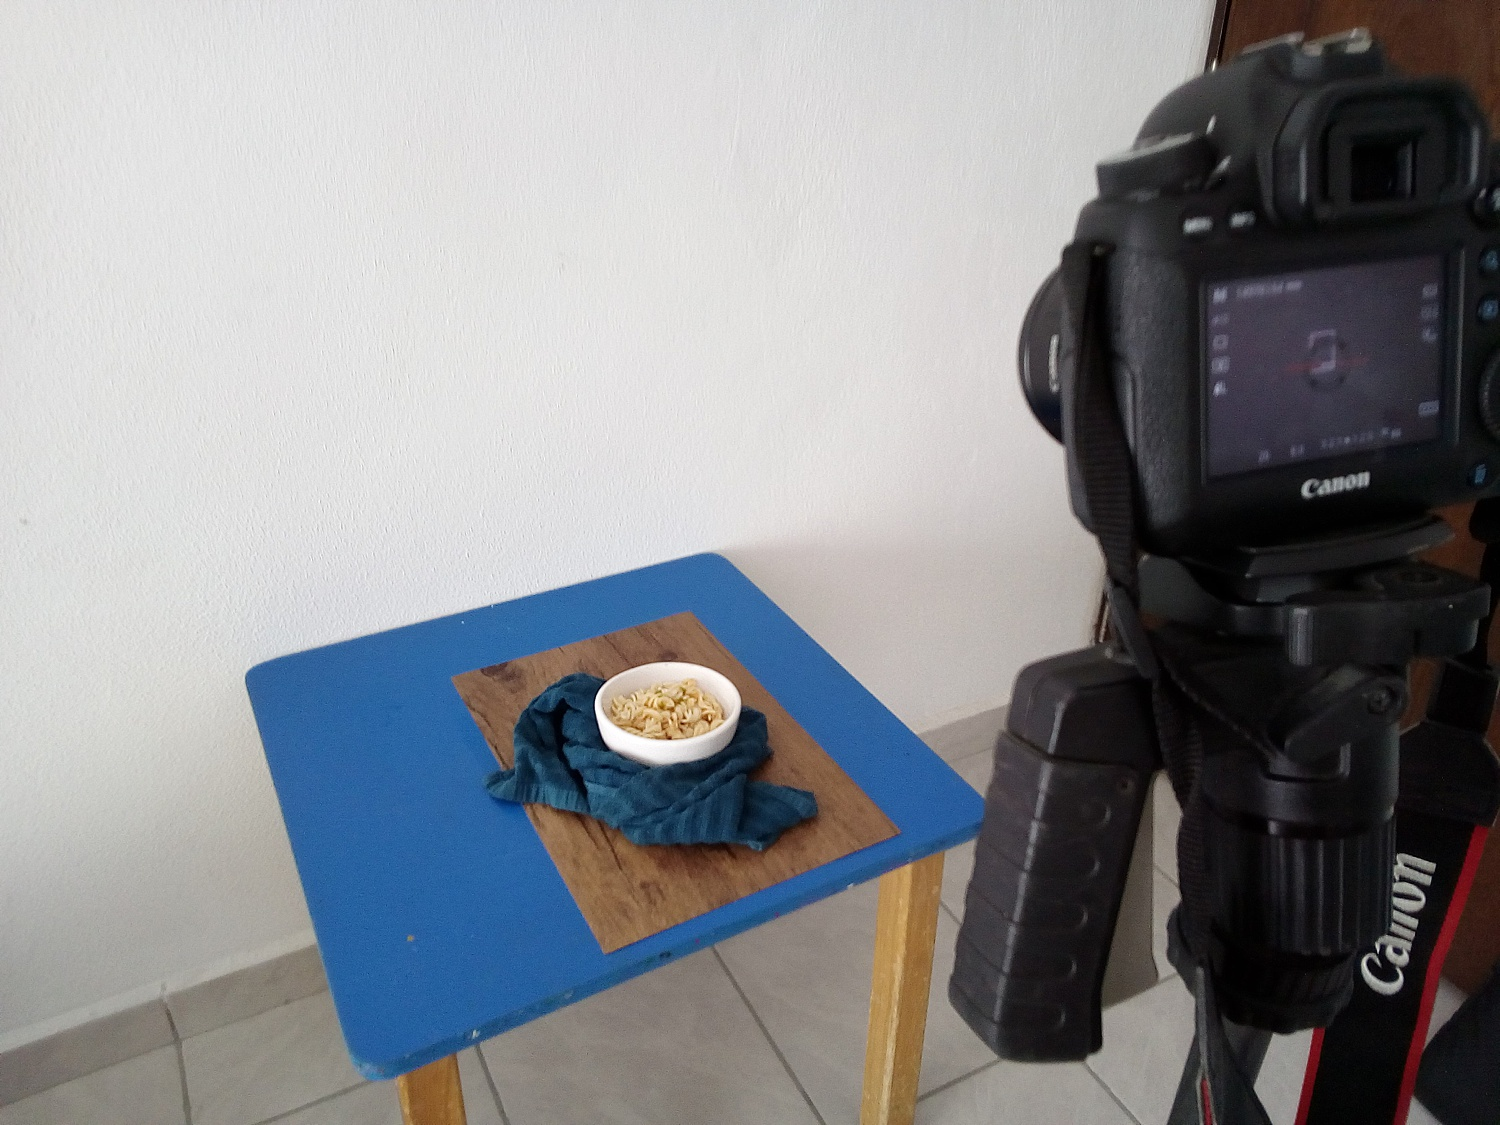 How to Create a Budget Tabletop Photography Setup for Shooting Food and Products